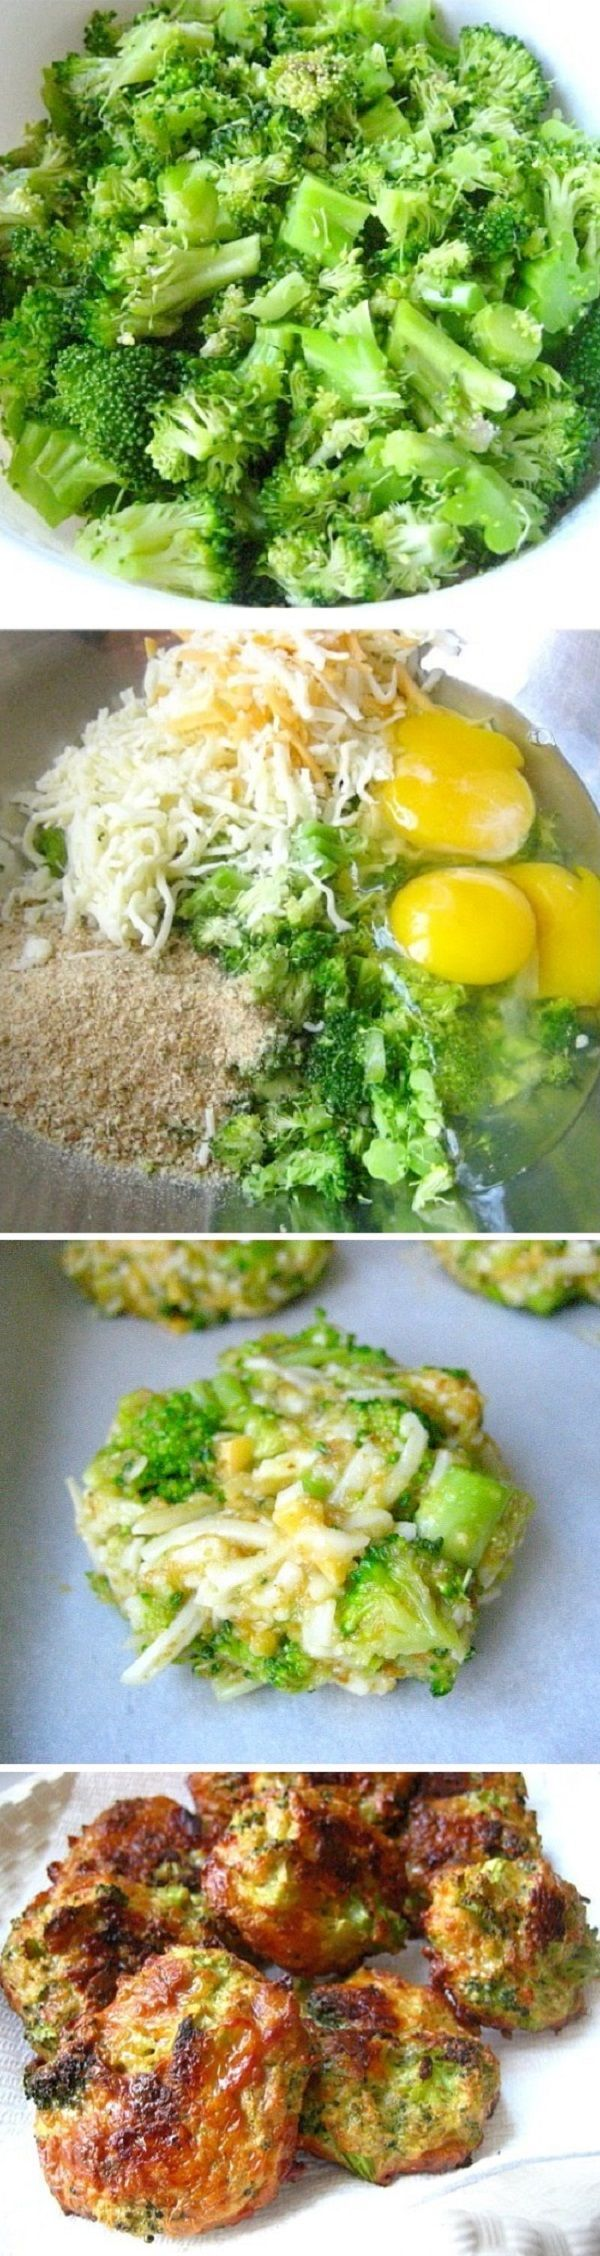 Broccoli Cheese Bites replace breadcrumbs with seasoned almond meal.